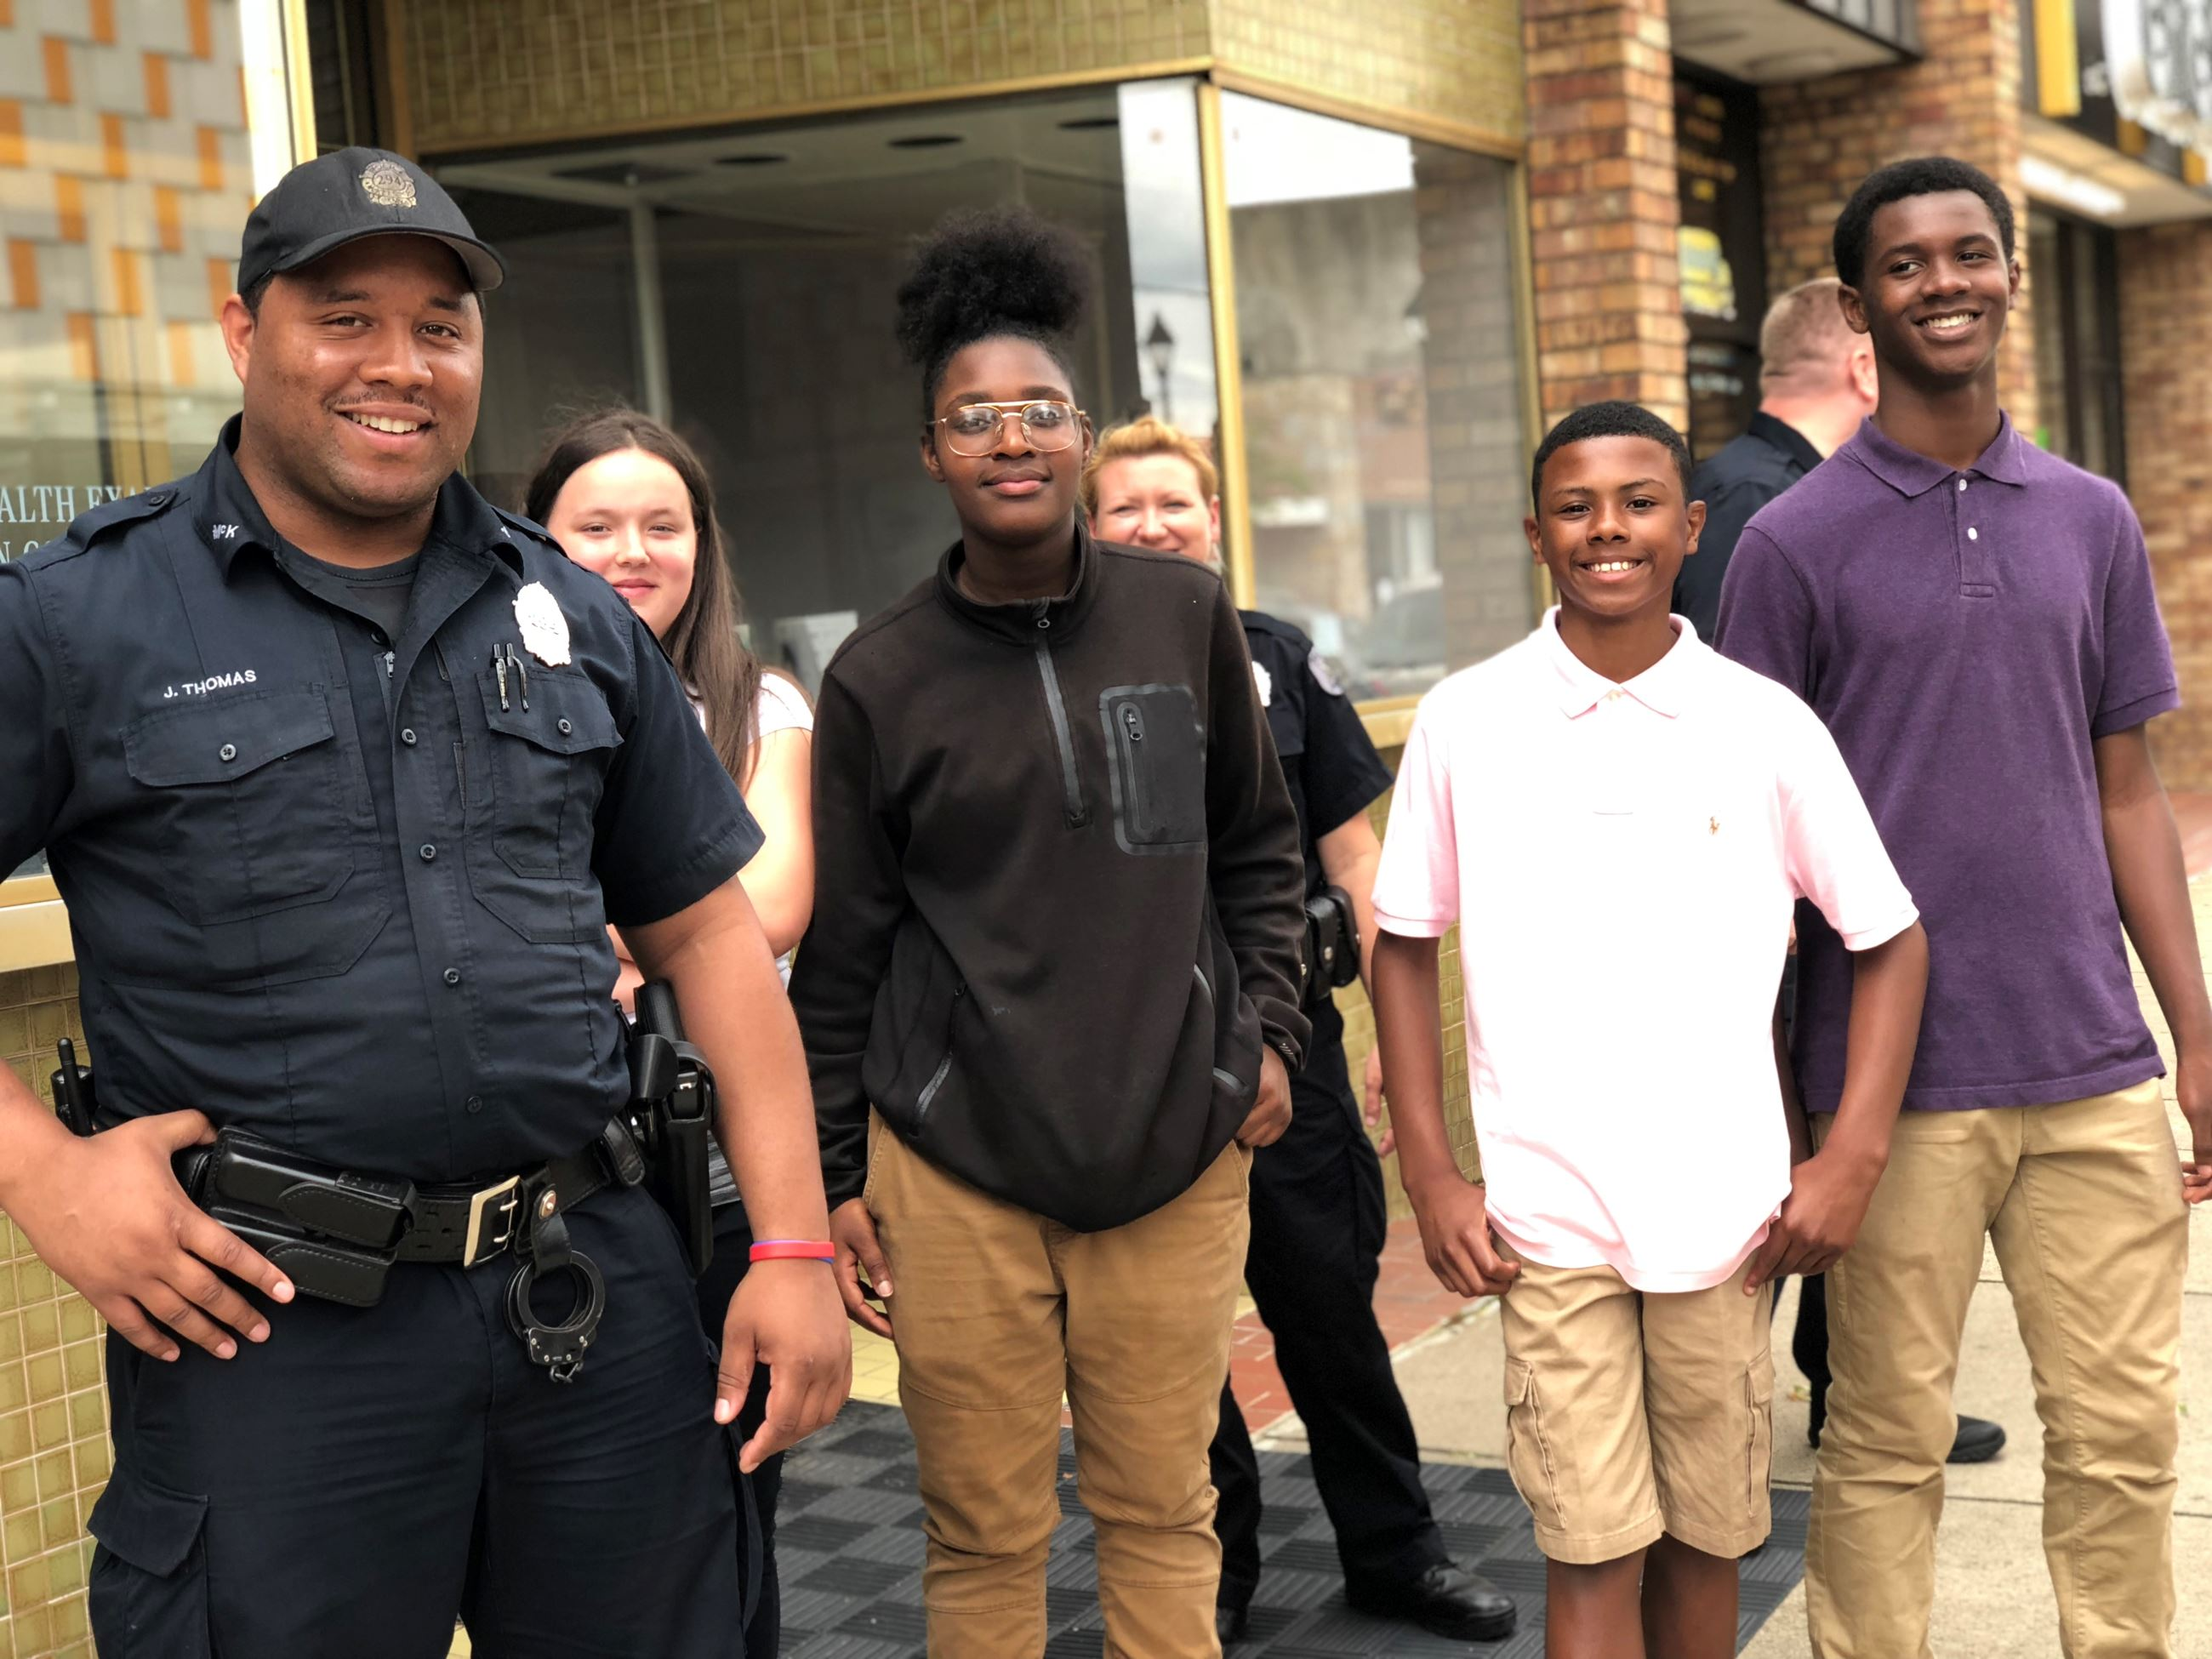 Students pose with police officer in business district